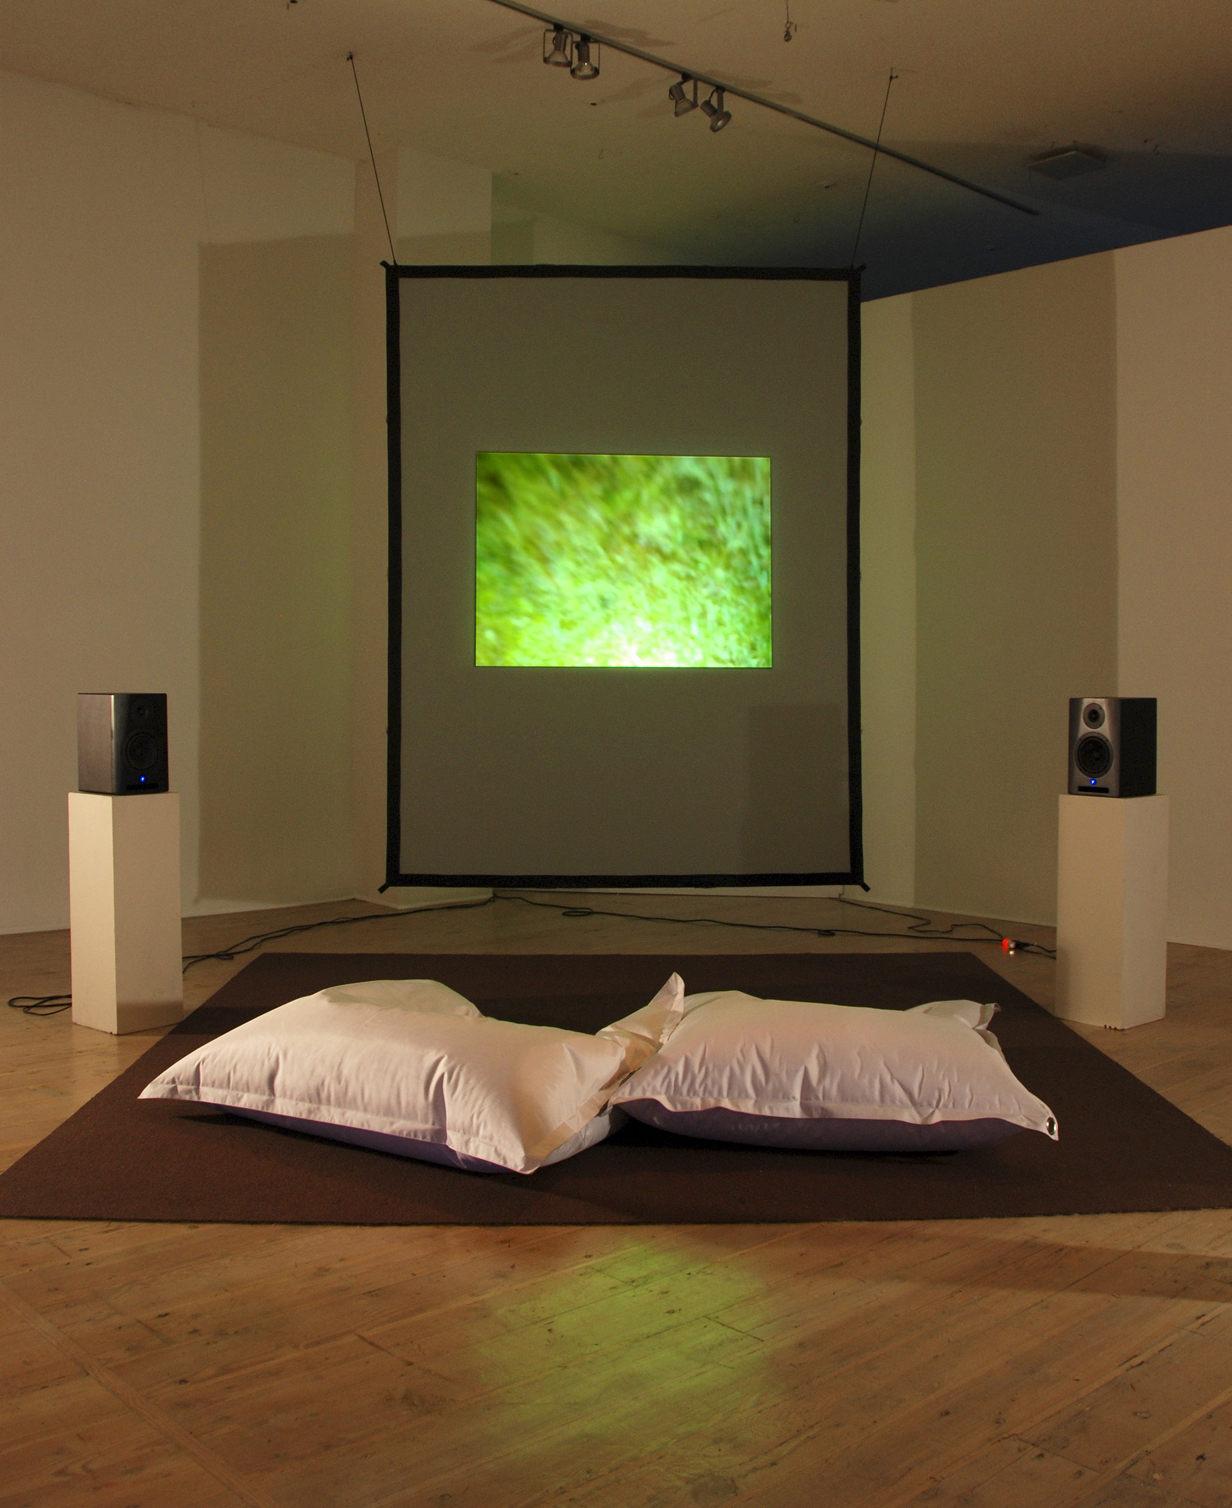 Deirdre Logue, Flip Toss (installation view), 2013. Photo courtesy of Vtape.